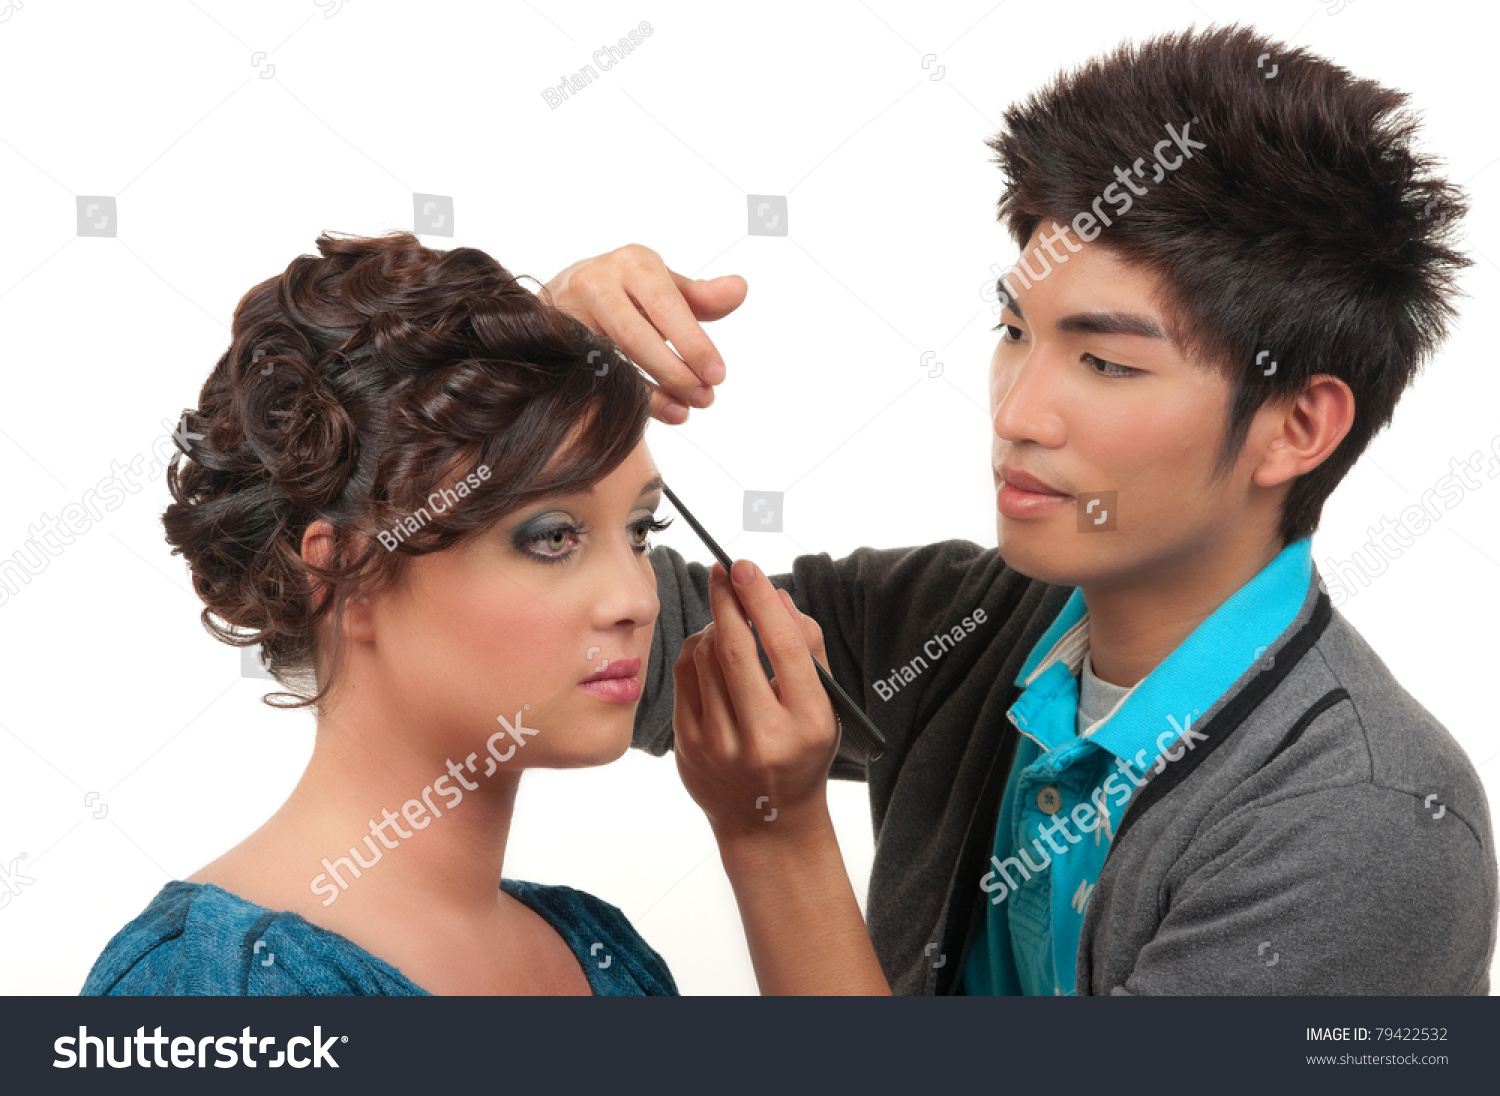 Cosmetics artist doing finishing touches of her customer's hair and make up before her prom,